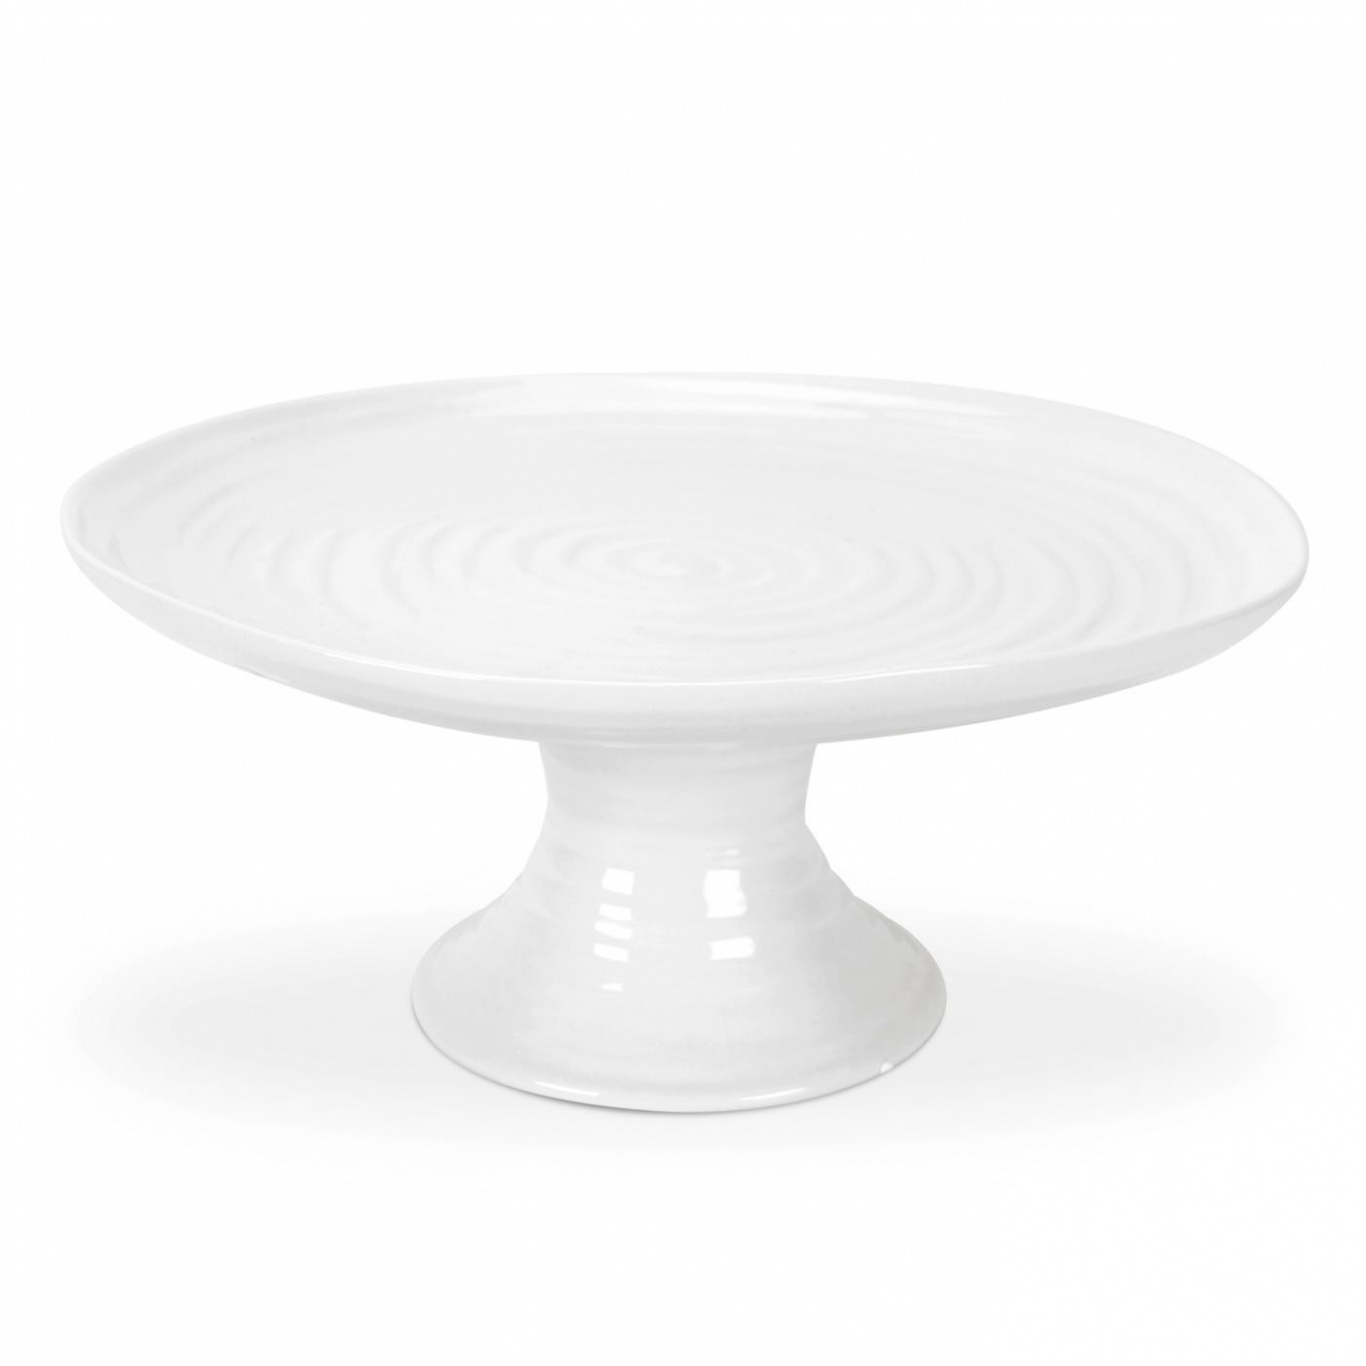 Image of Sophie Conran White Small Footed Cake Plate